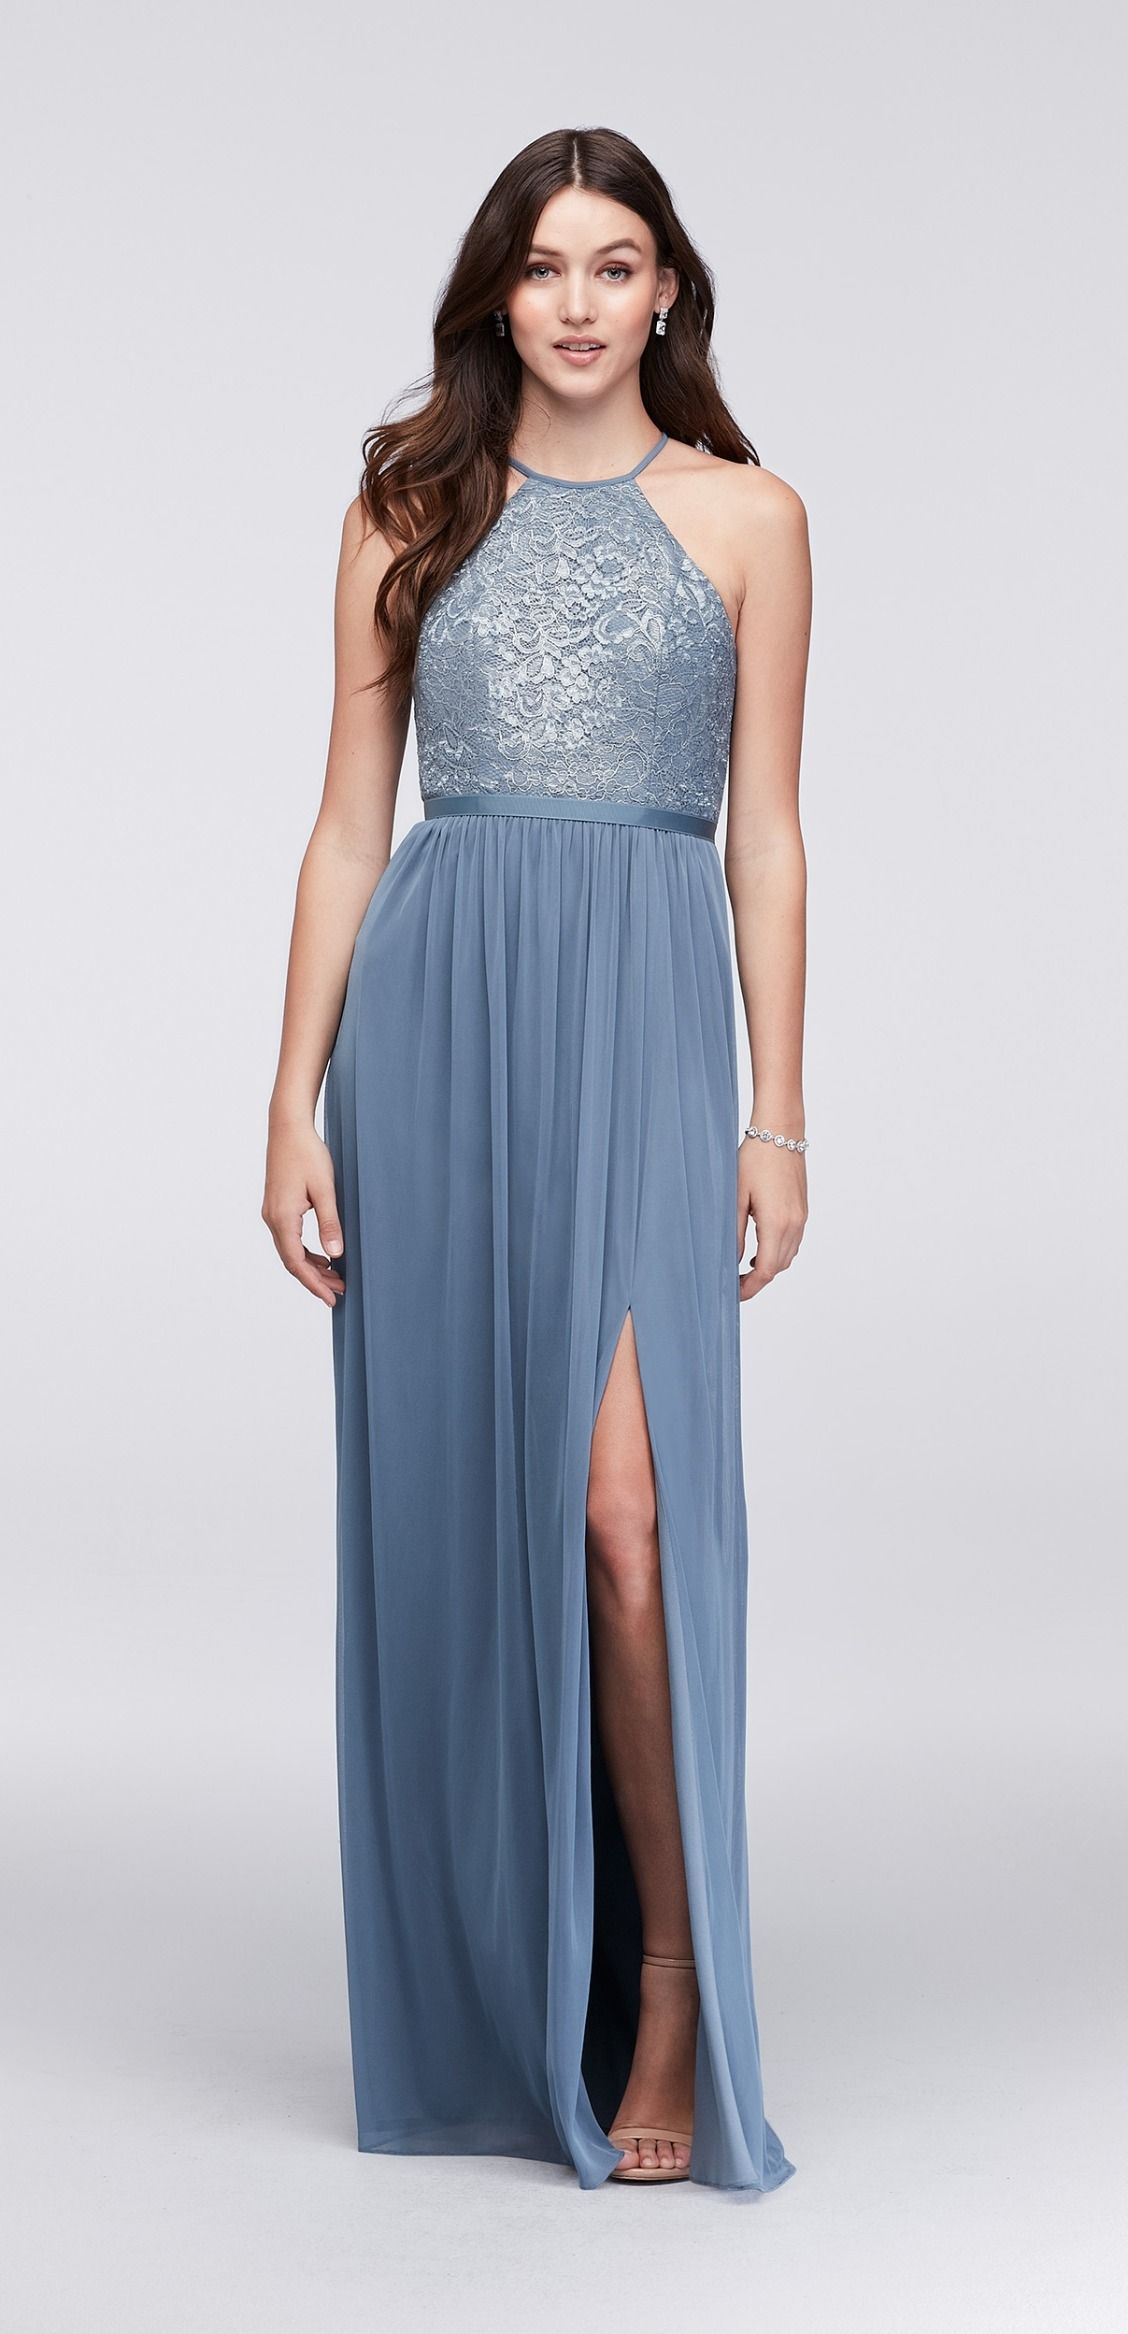 c03b180e80f Steel Blue Lace Bridesmaid Dresses - raveitsafe